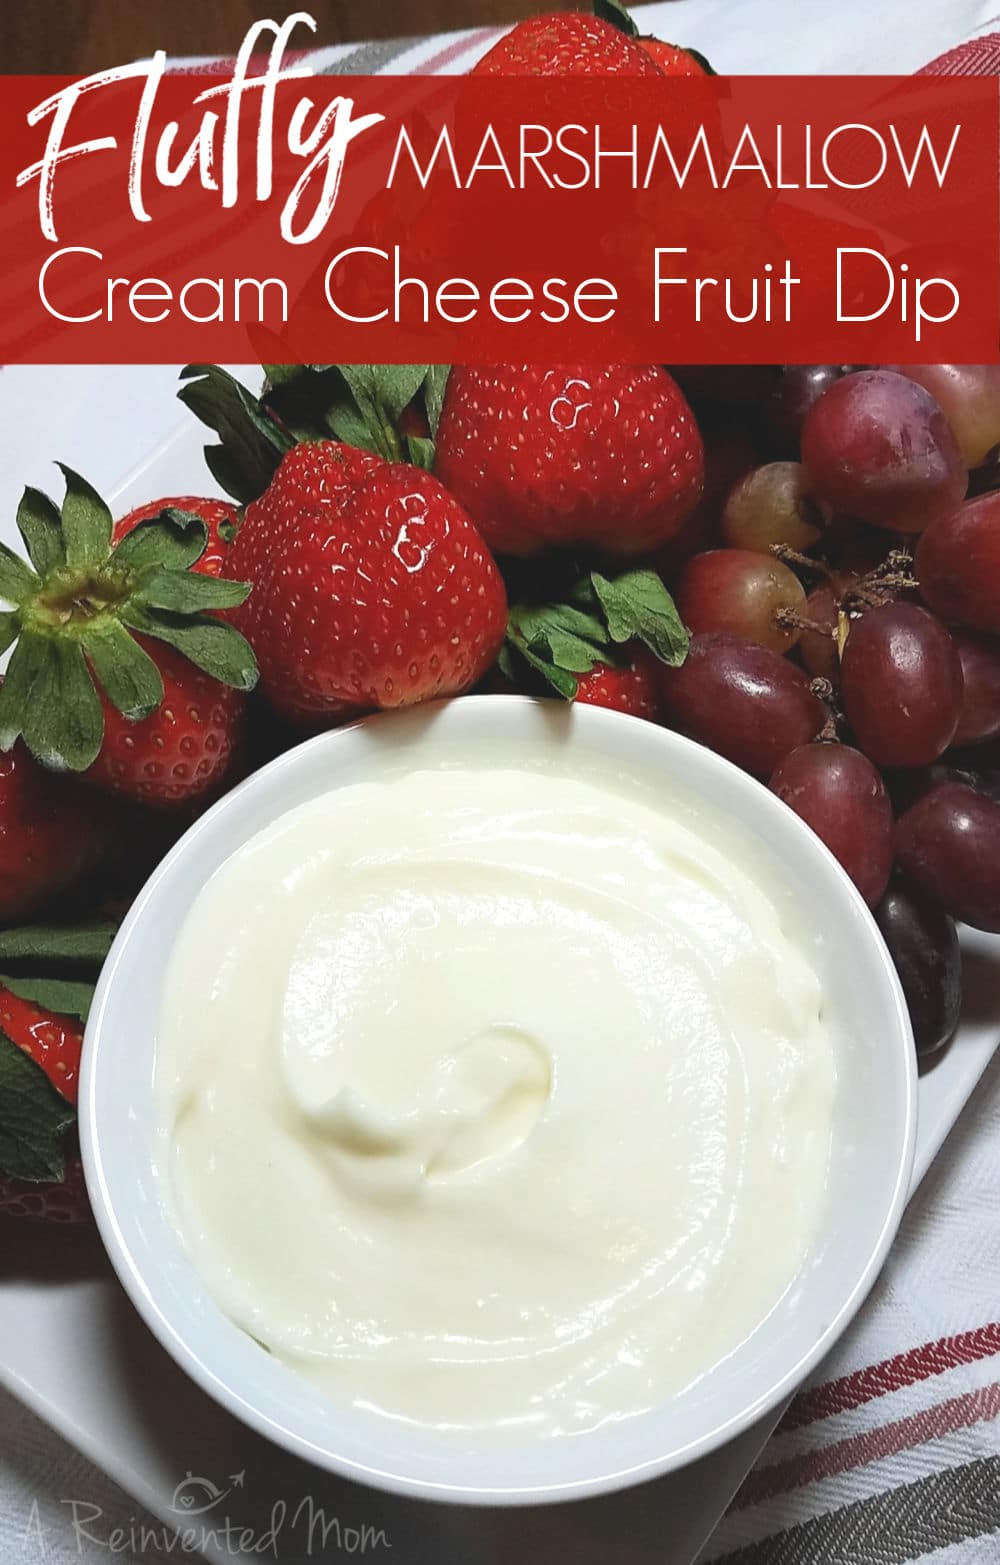 White bowl of Fluffy Marshmallow Cream Cheese Fruit Dip with strawberries & grapes. | A Reinvented Mom #marshmallowcreamcheesefruitdip #fruitdip #fluffdip